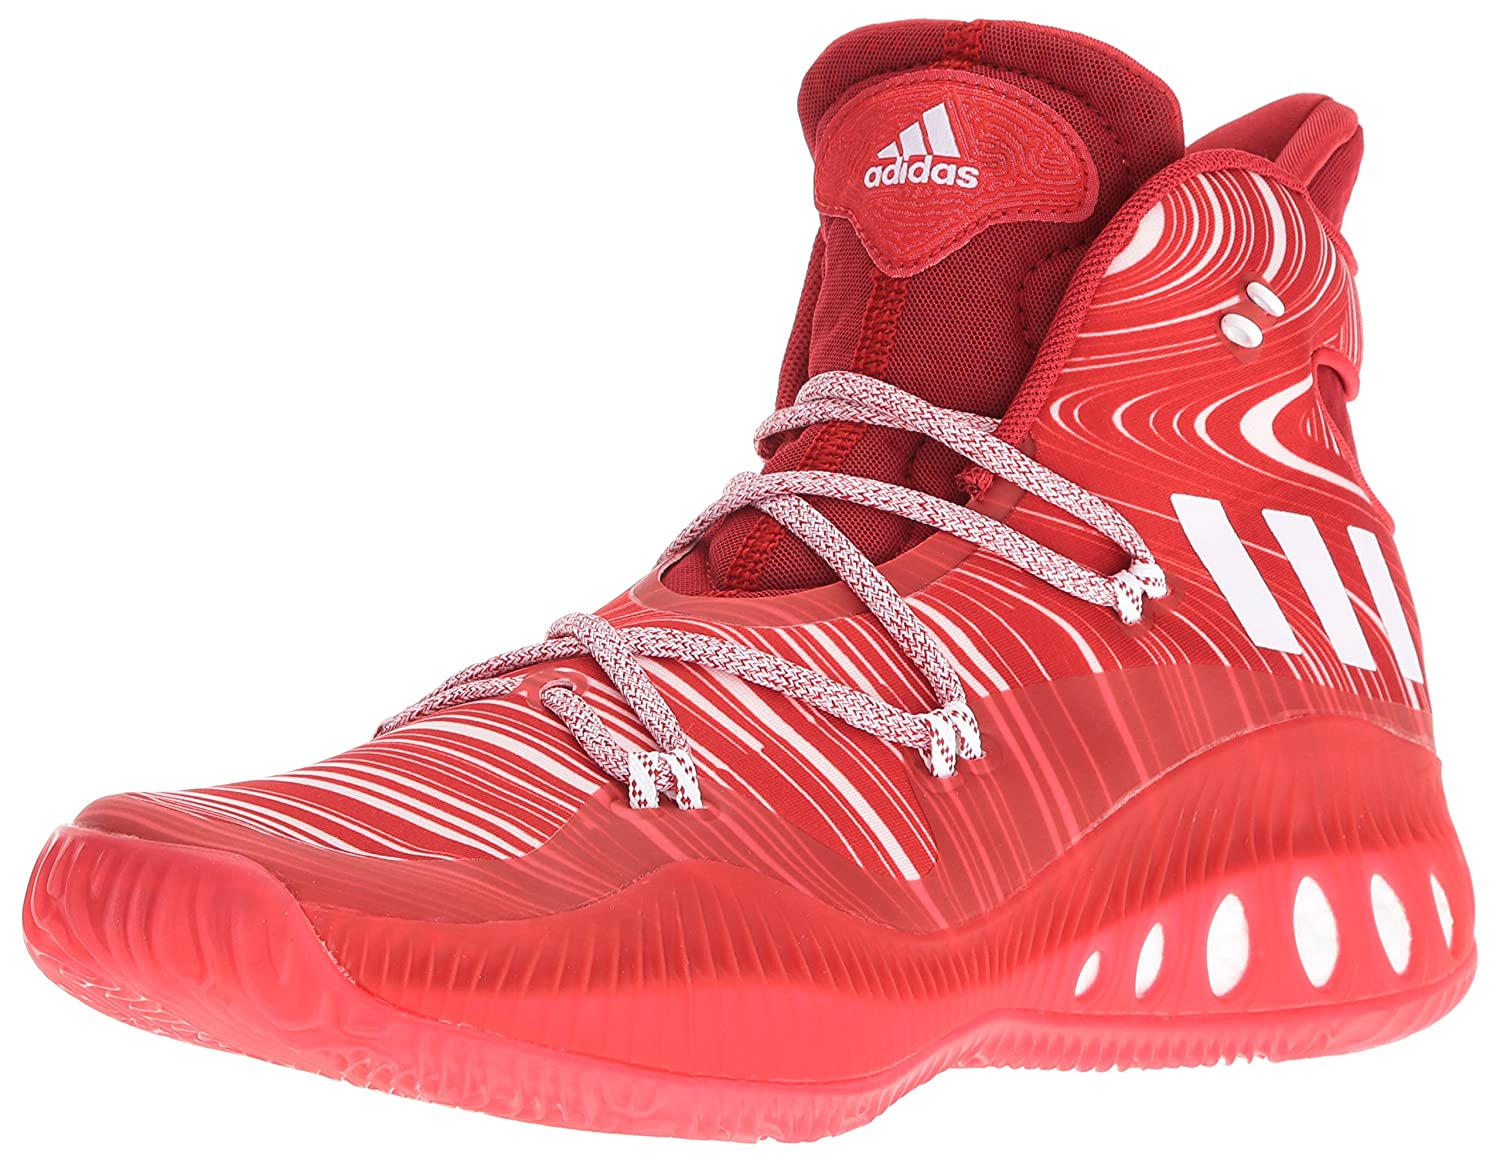 adidas Performance Men's Crazy Explosive Basketball Shoe B01FXDSUCI 6 M US|Scarlet/White/University Red